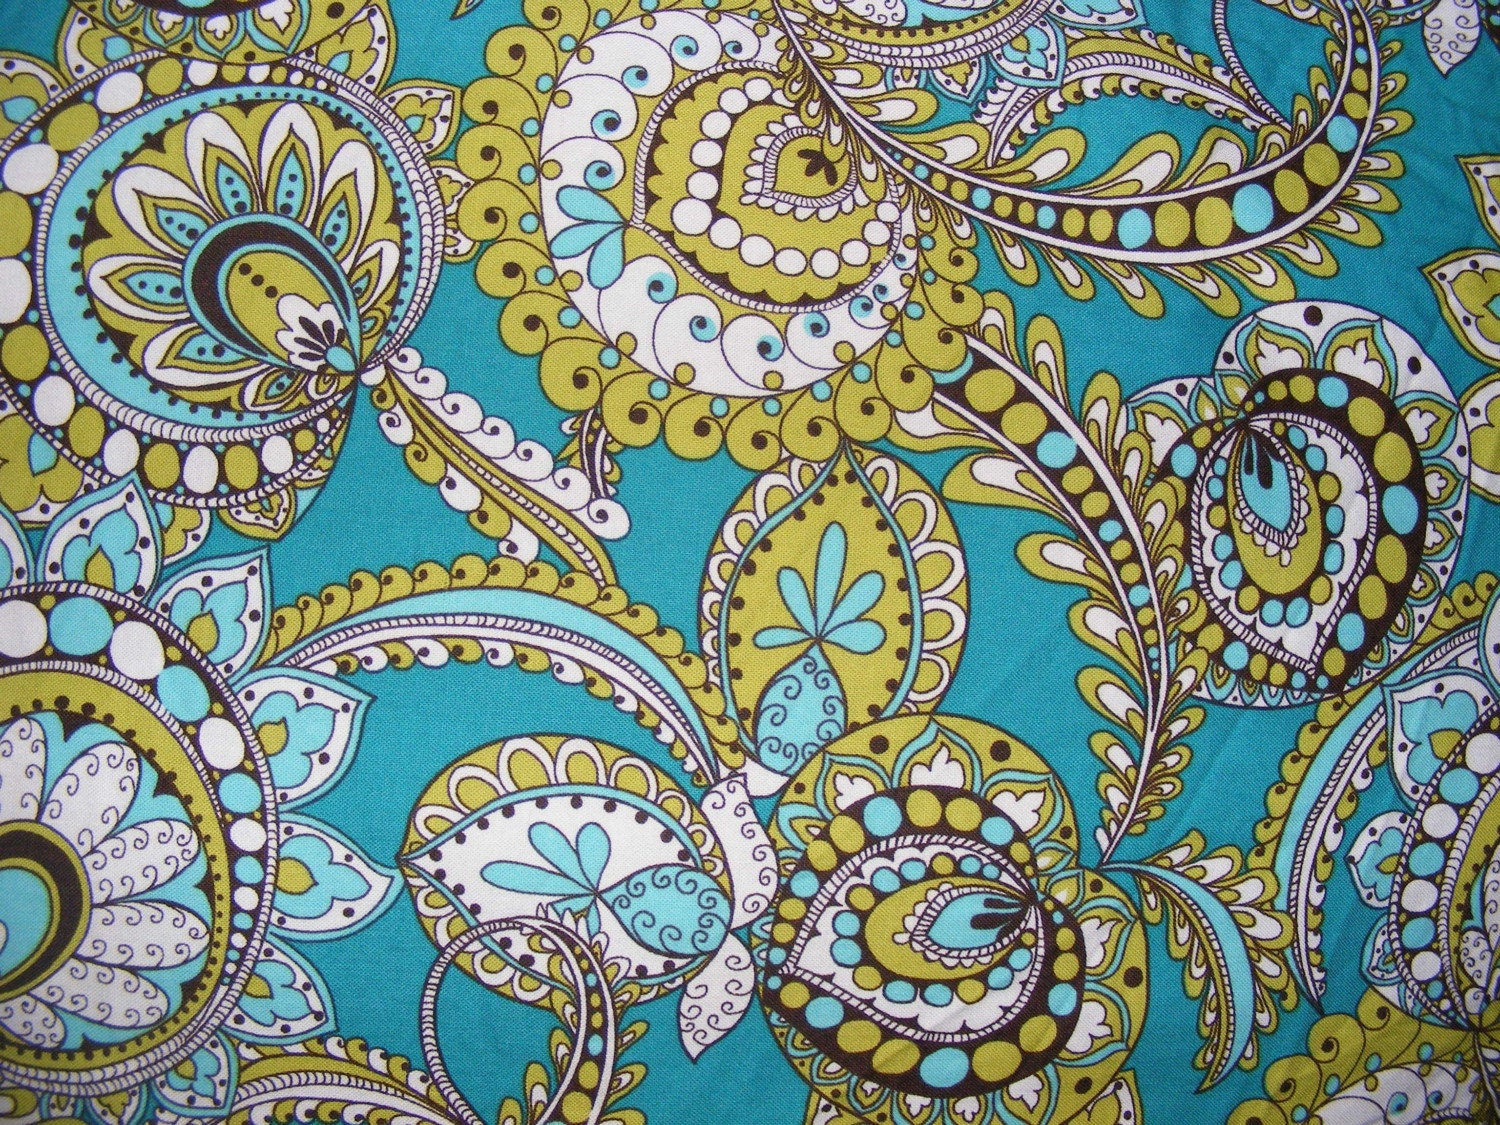 Sale peacock blue paisley vera bradley fabric one yard extra for Patterned material for sale